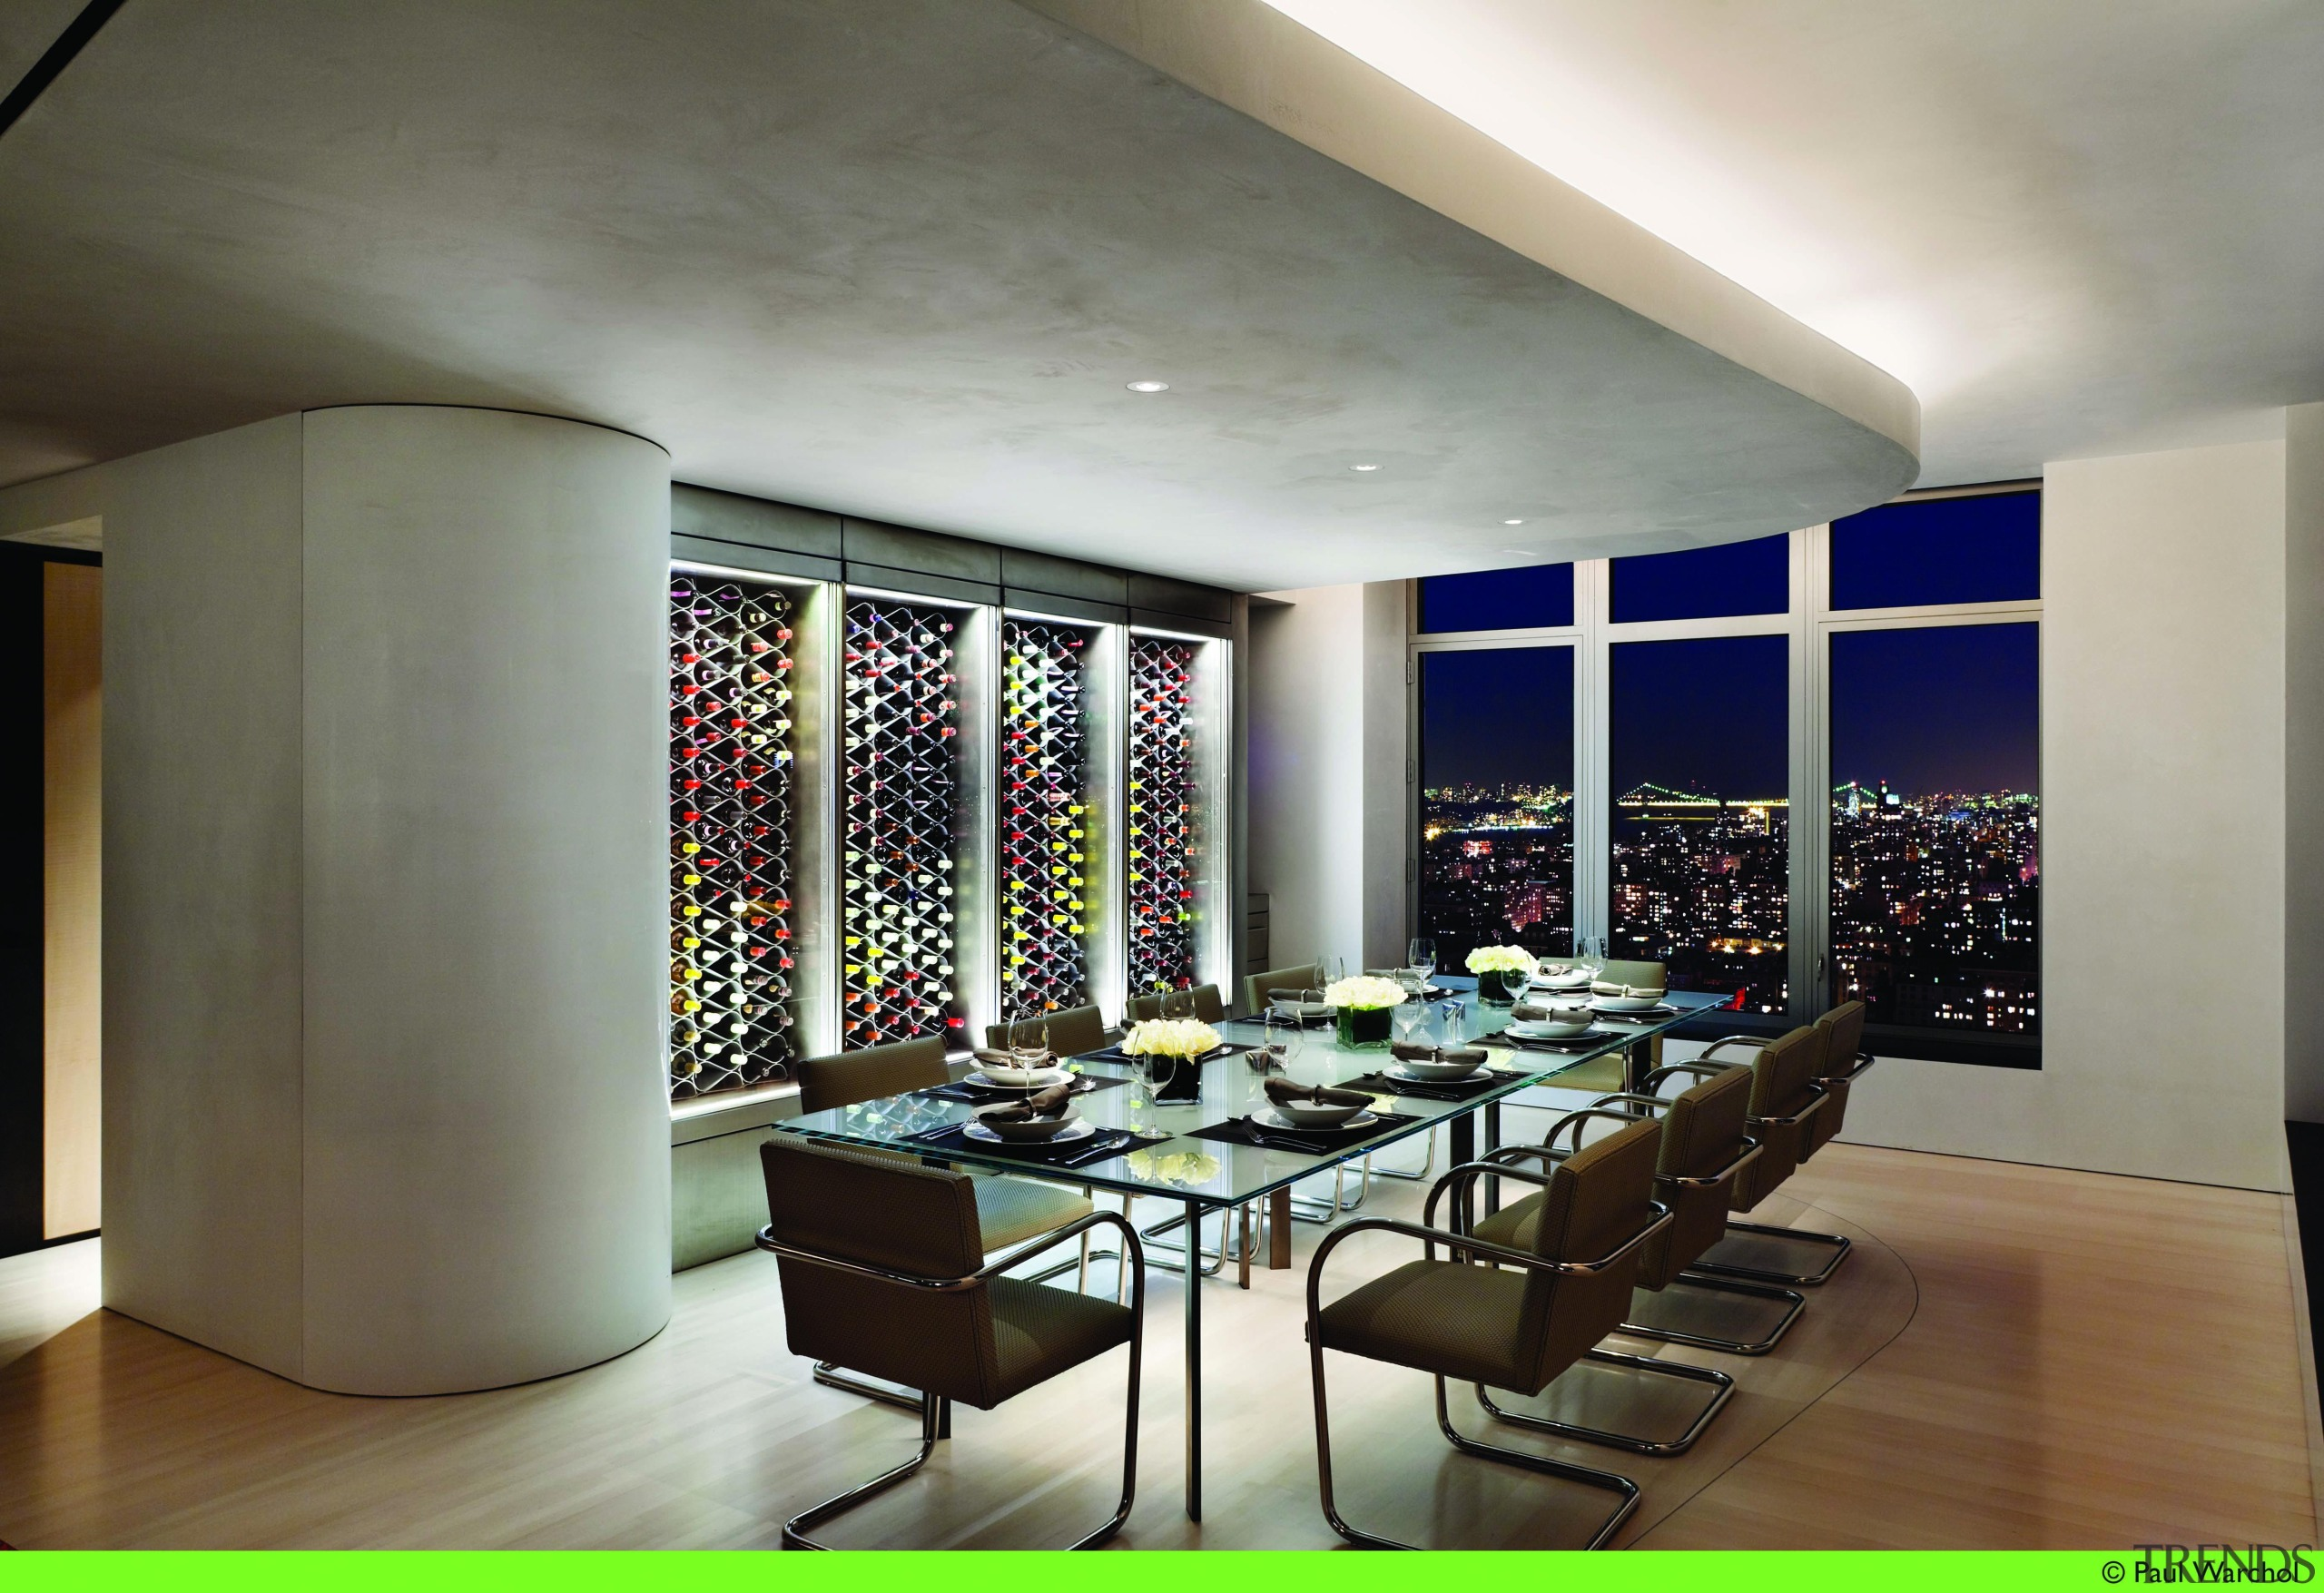 A unique and striking-looking wine storage solution for ceiling, dining room, interior design, room, table, gray